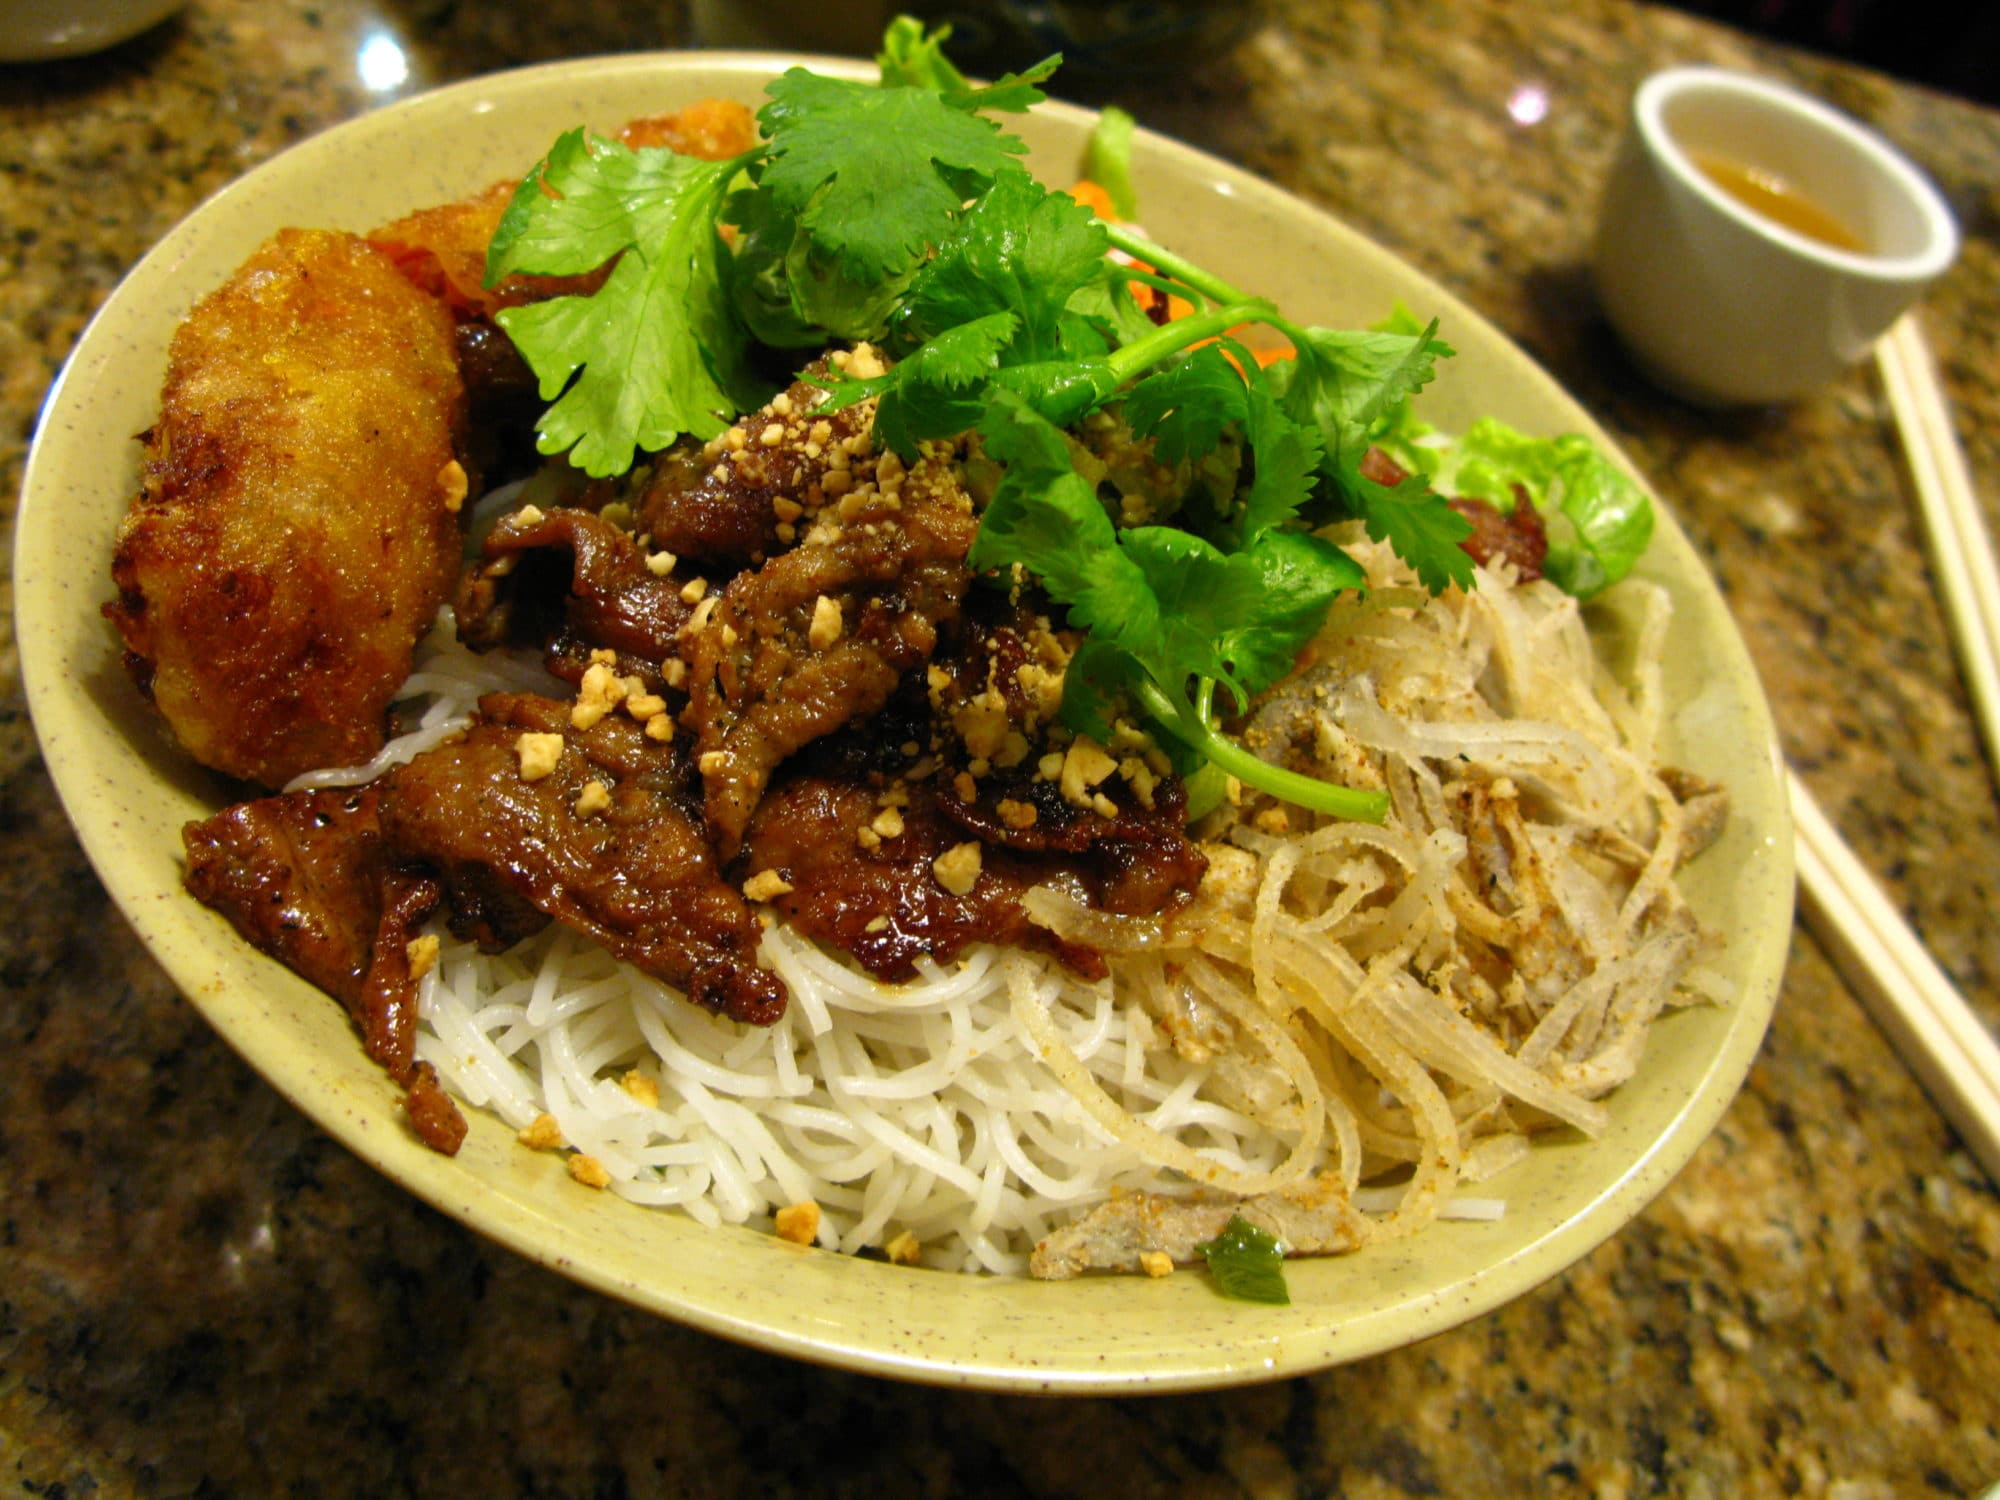 Ossington Restaurants: Golden Turtle serves Vietnamese dishes.